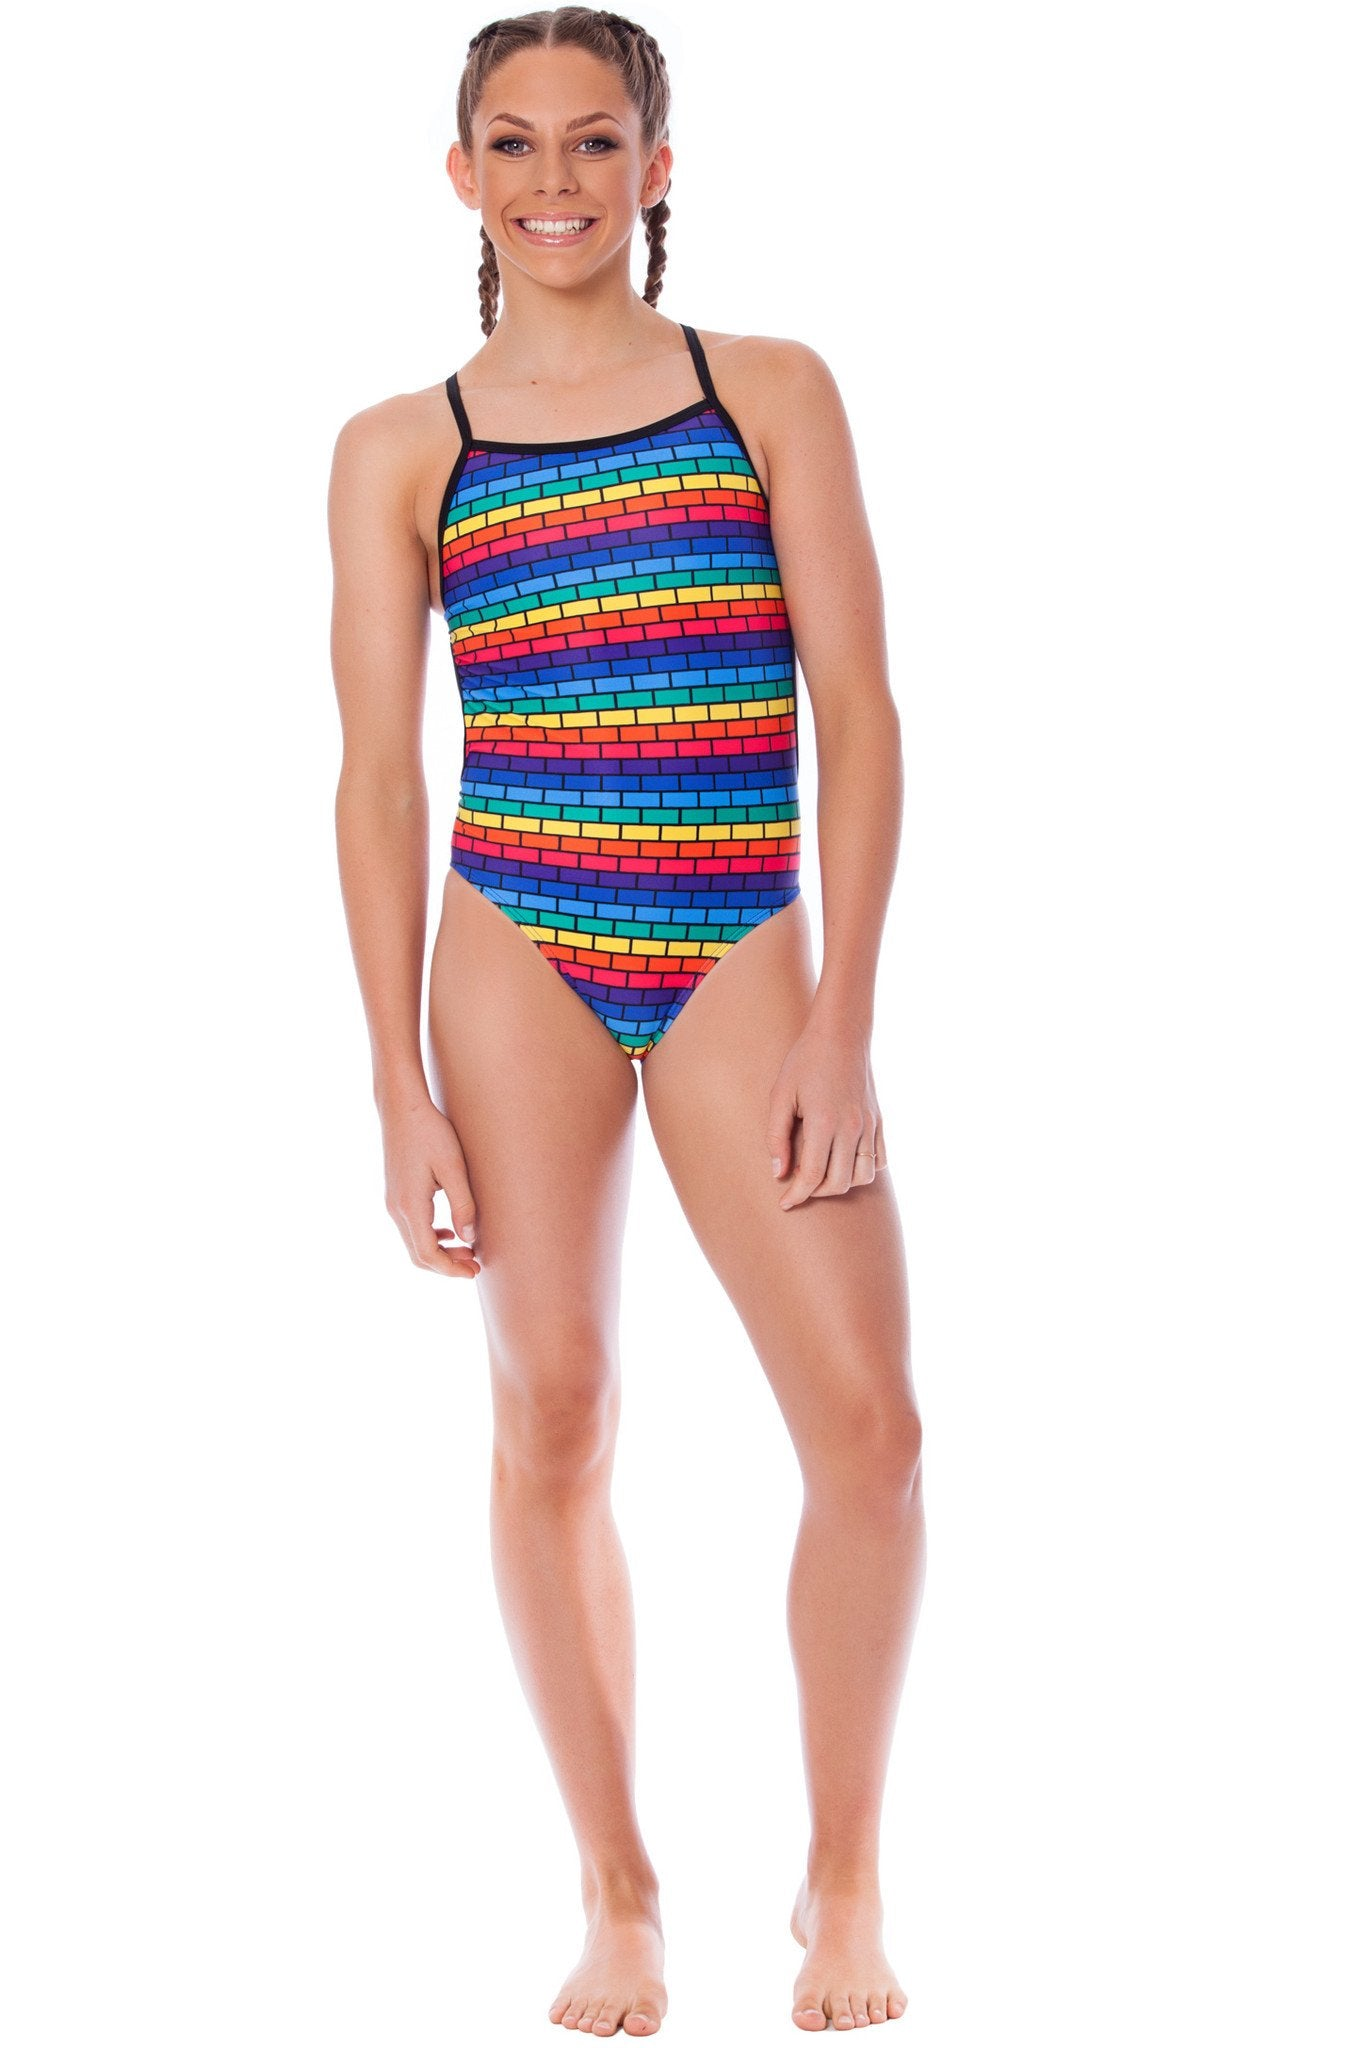 Follow Me Girls Thin Strap - Shop Zealous Training Swimwear